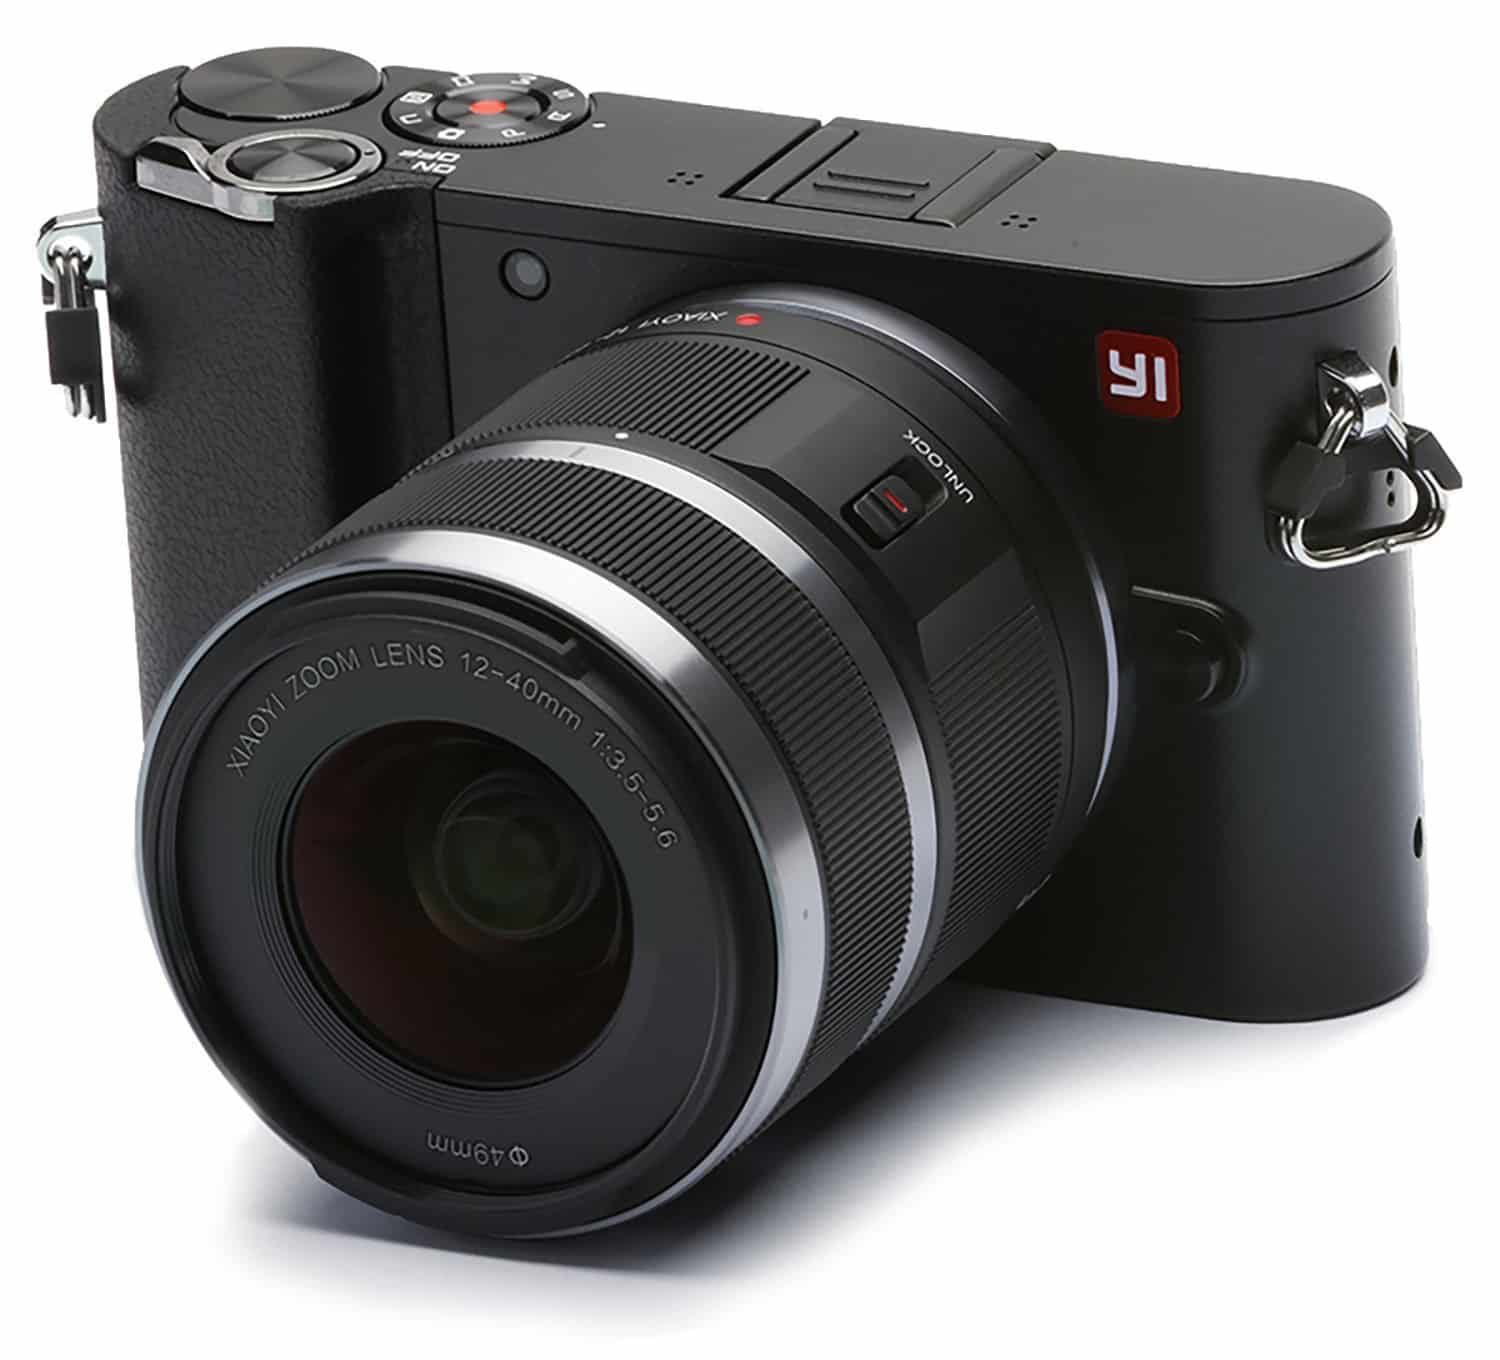 A front look at the Ti M1 mirrorless camera with lens.